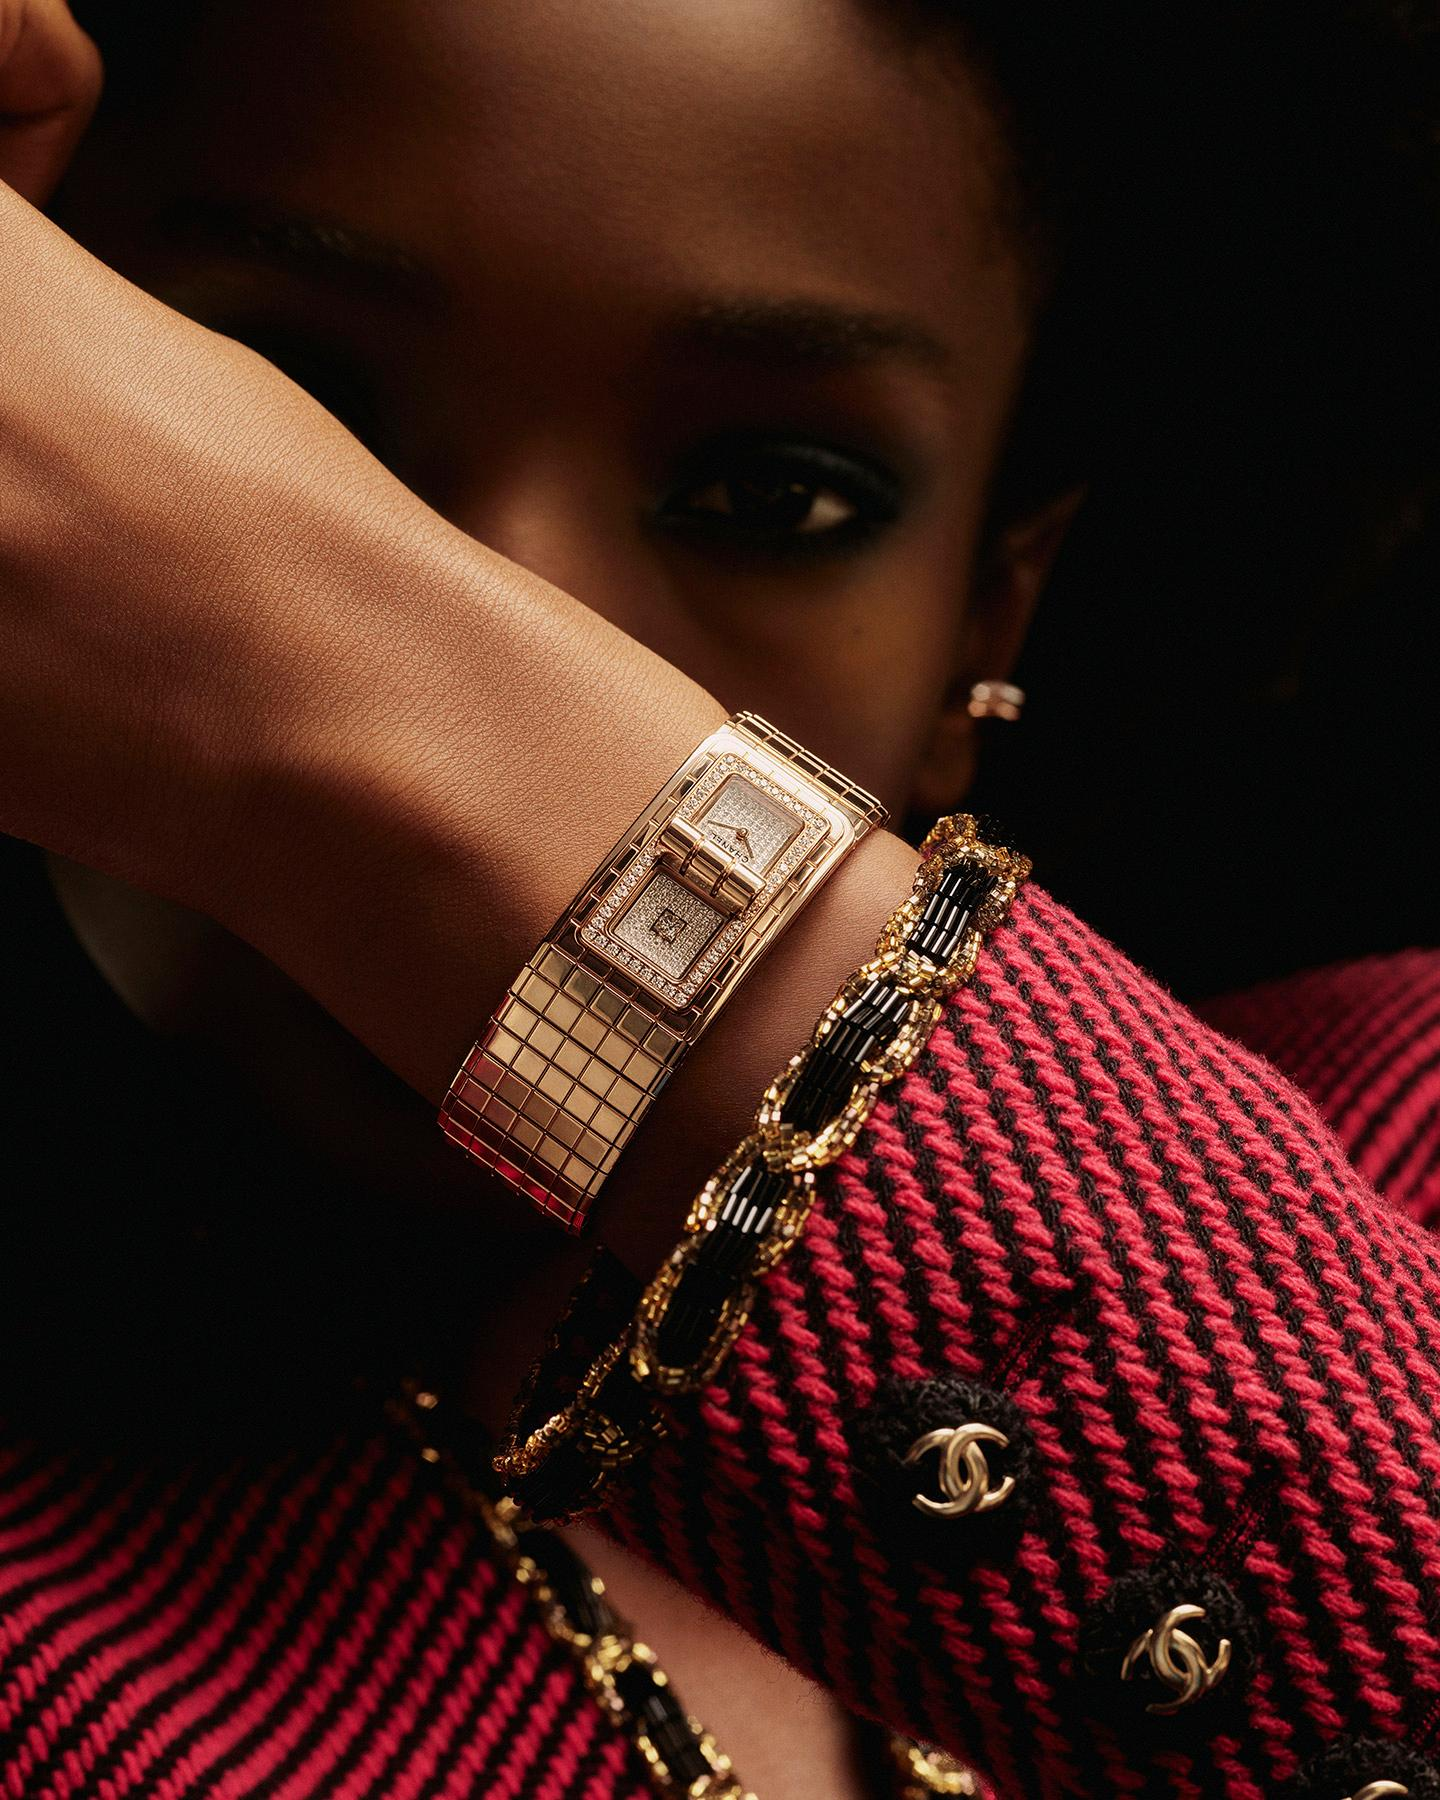 model wearing the CODE COCO watch in BEIGE GOLD